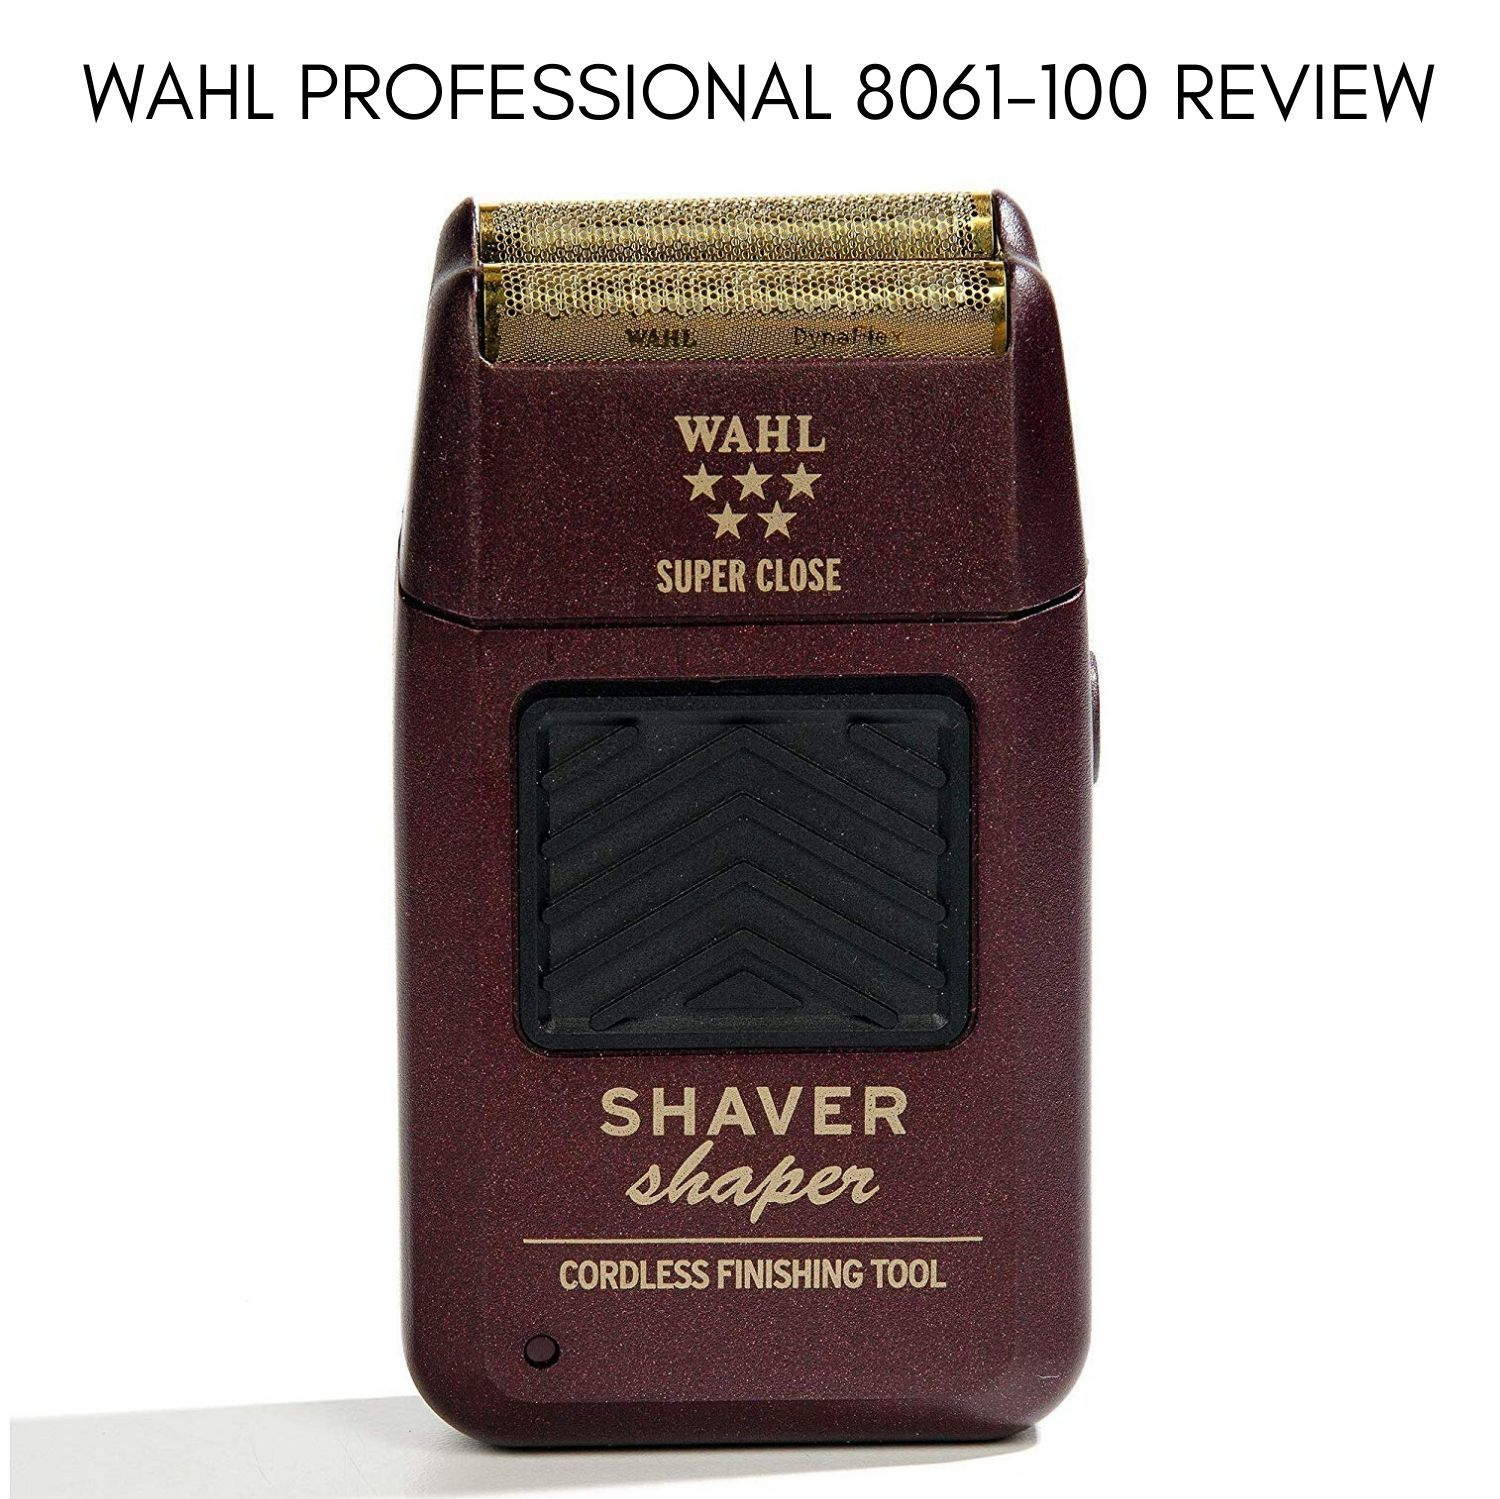 Wahl Professional 8061-100 Reviews